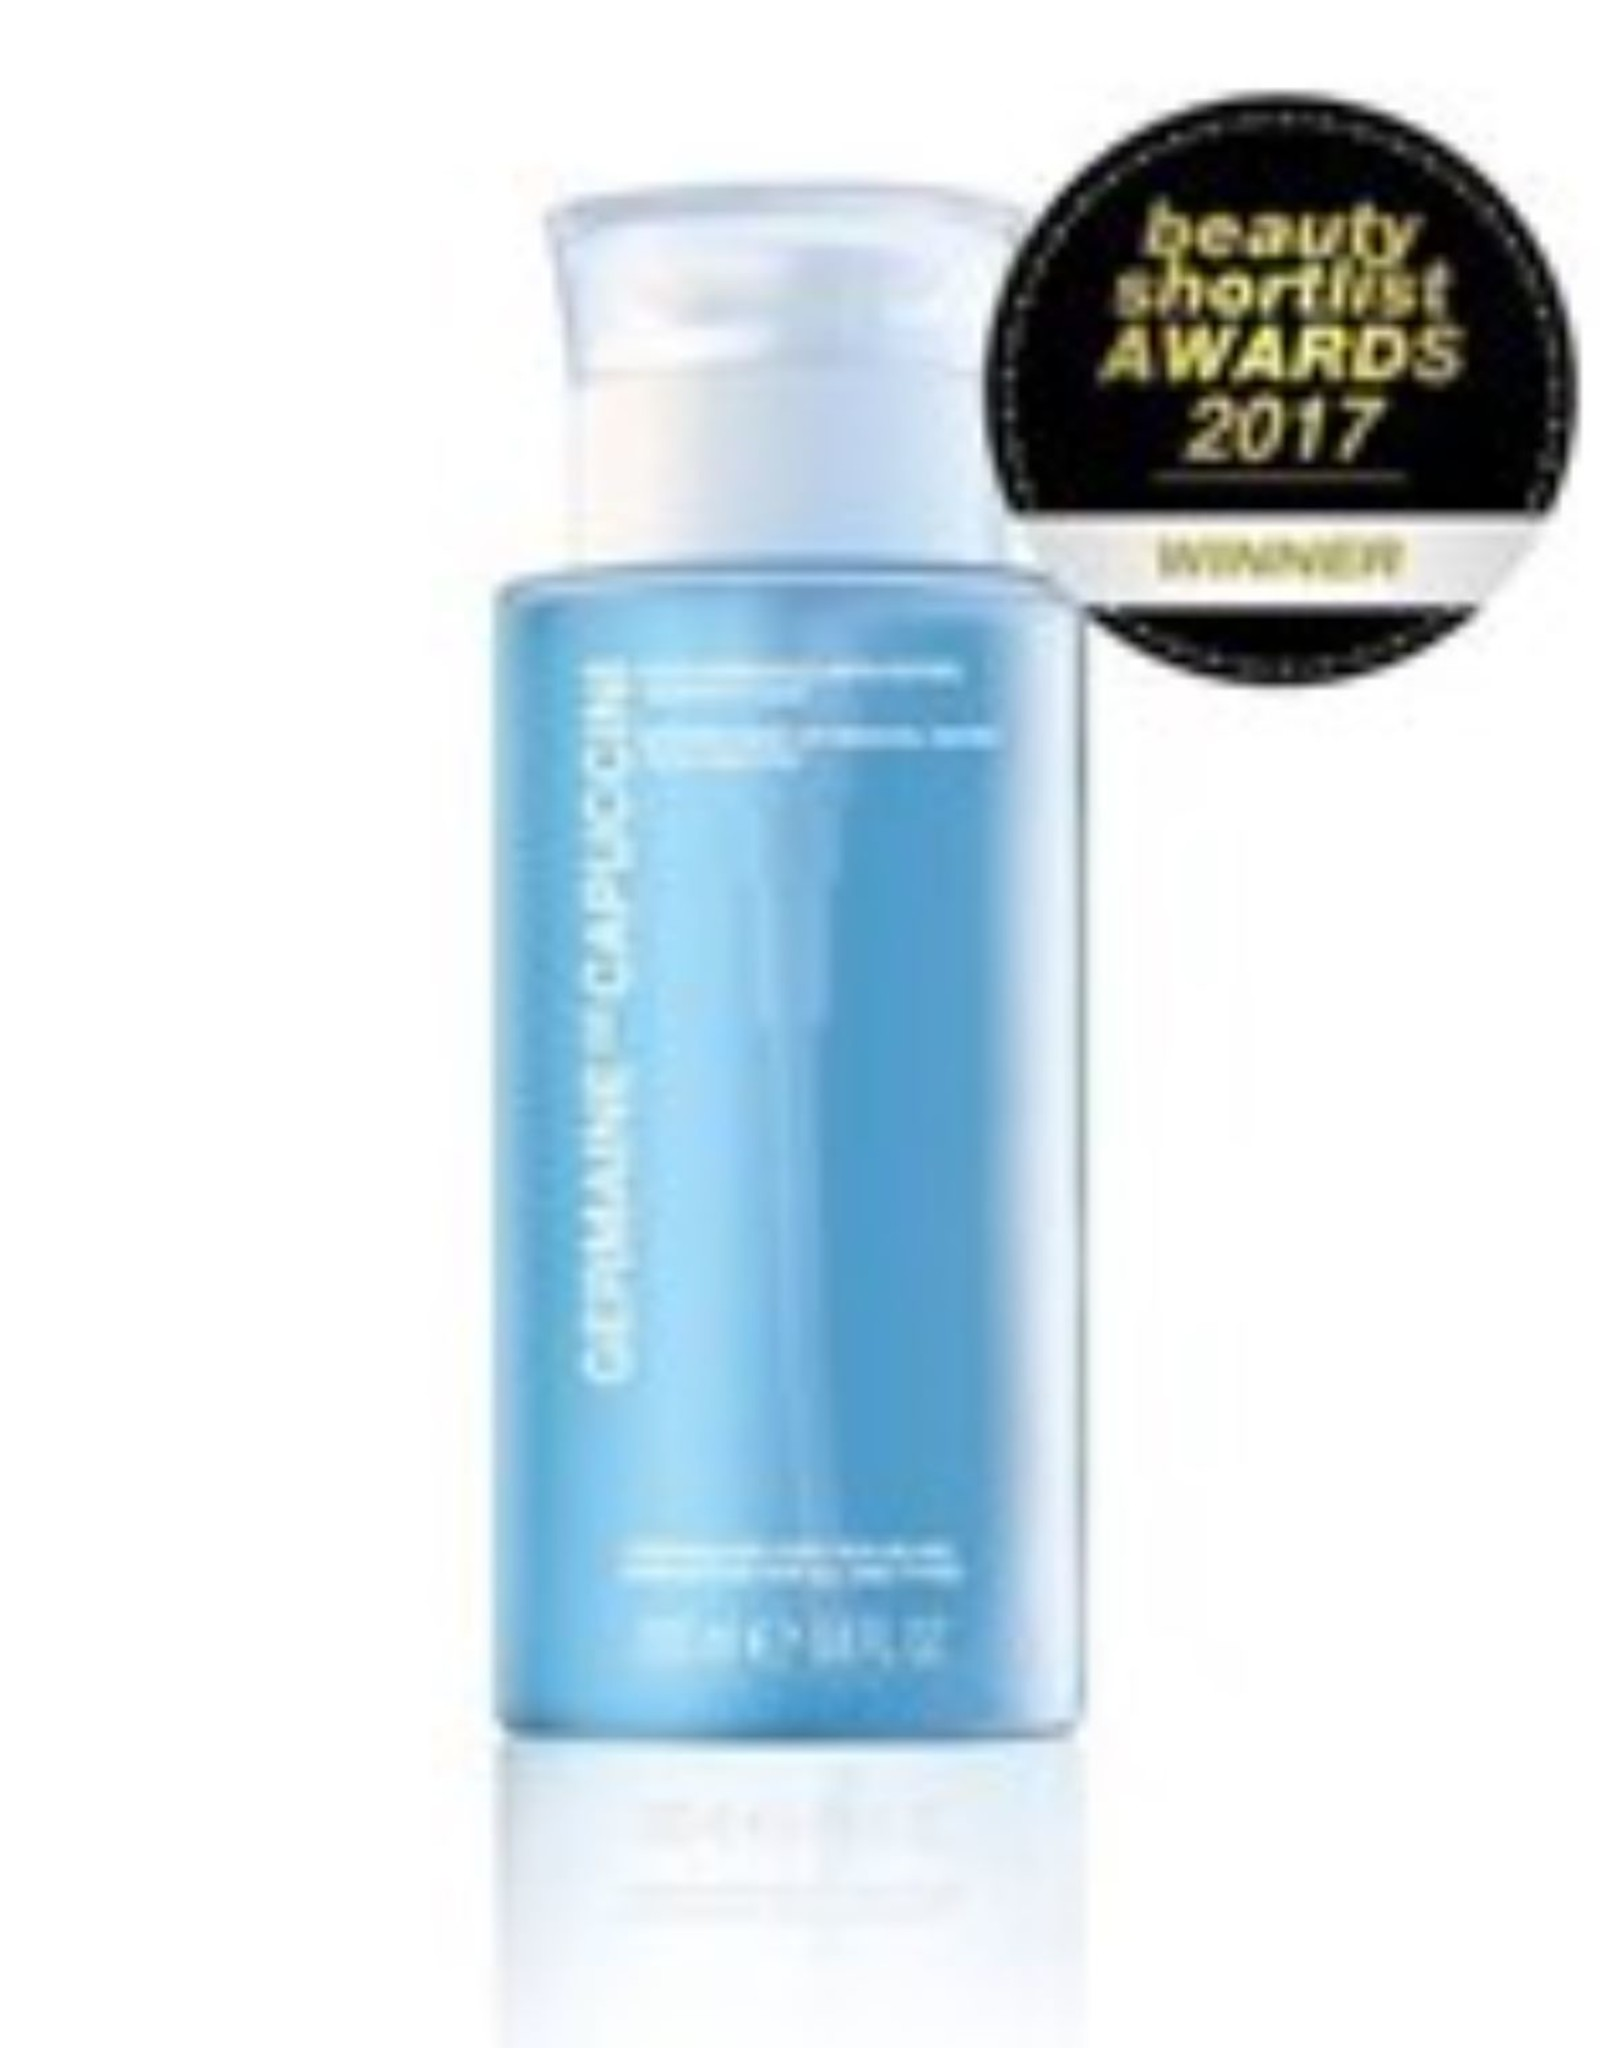 Germaine de Cappucini Express Make-Up Removal Water